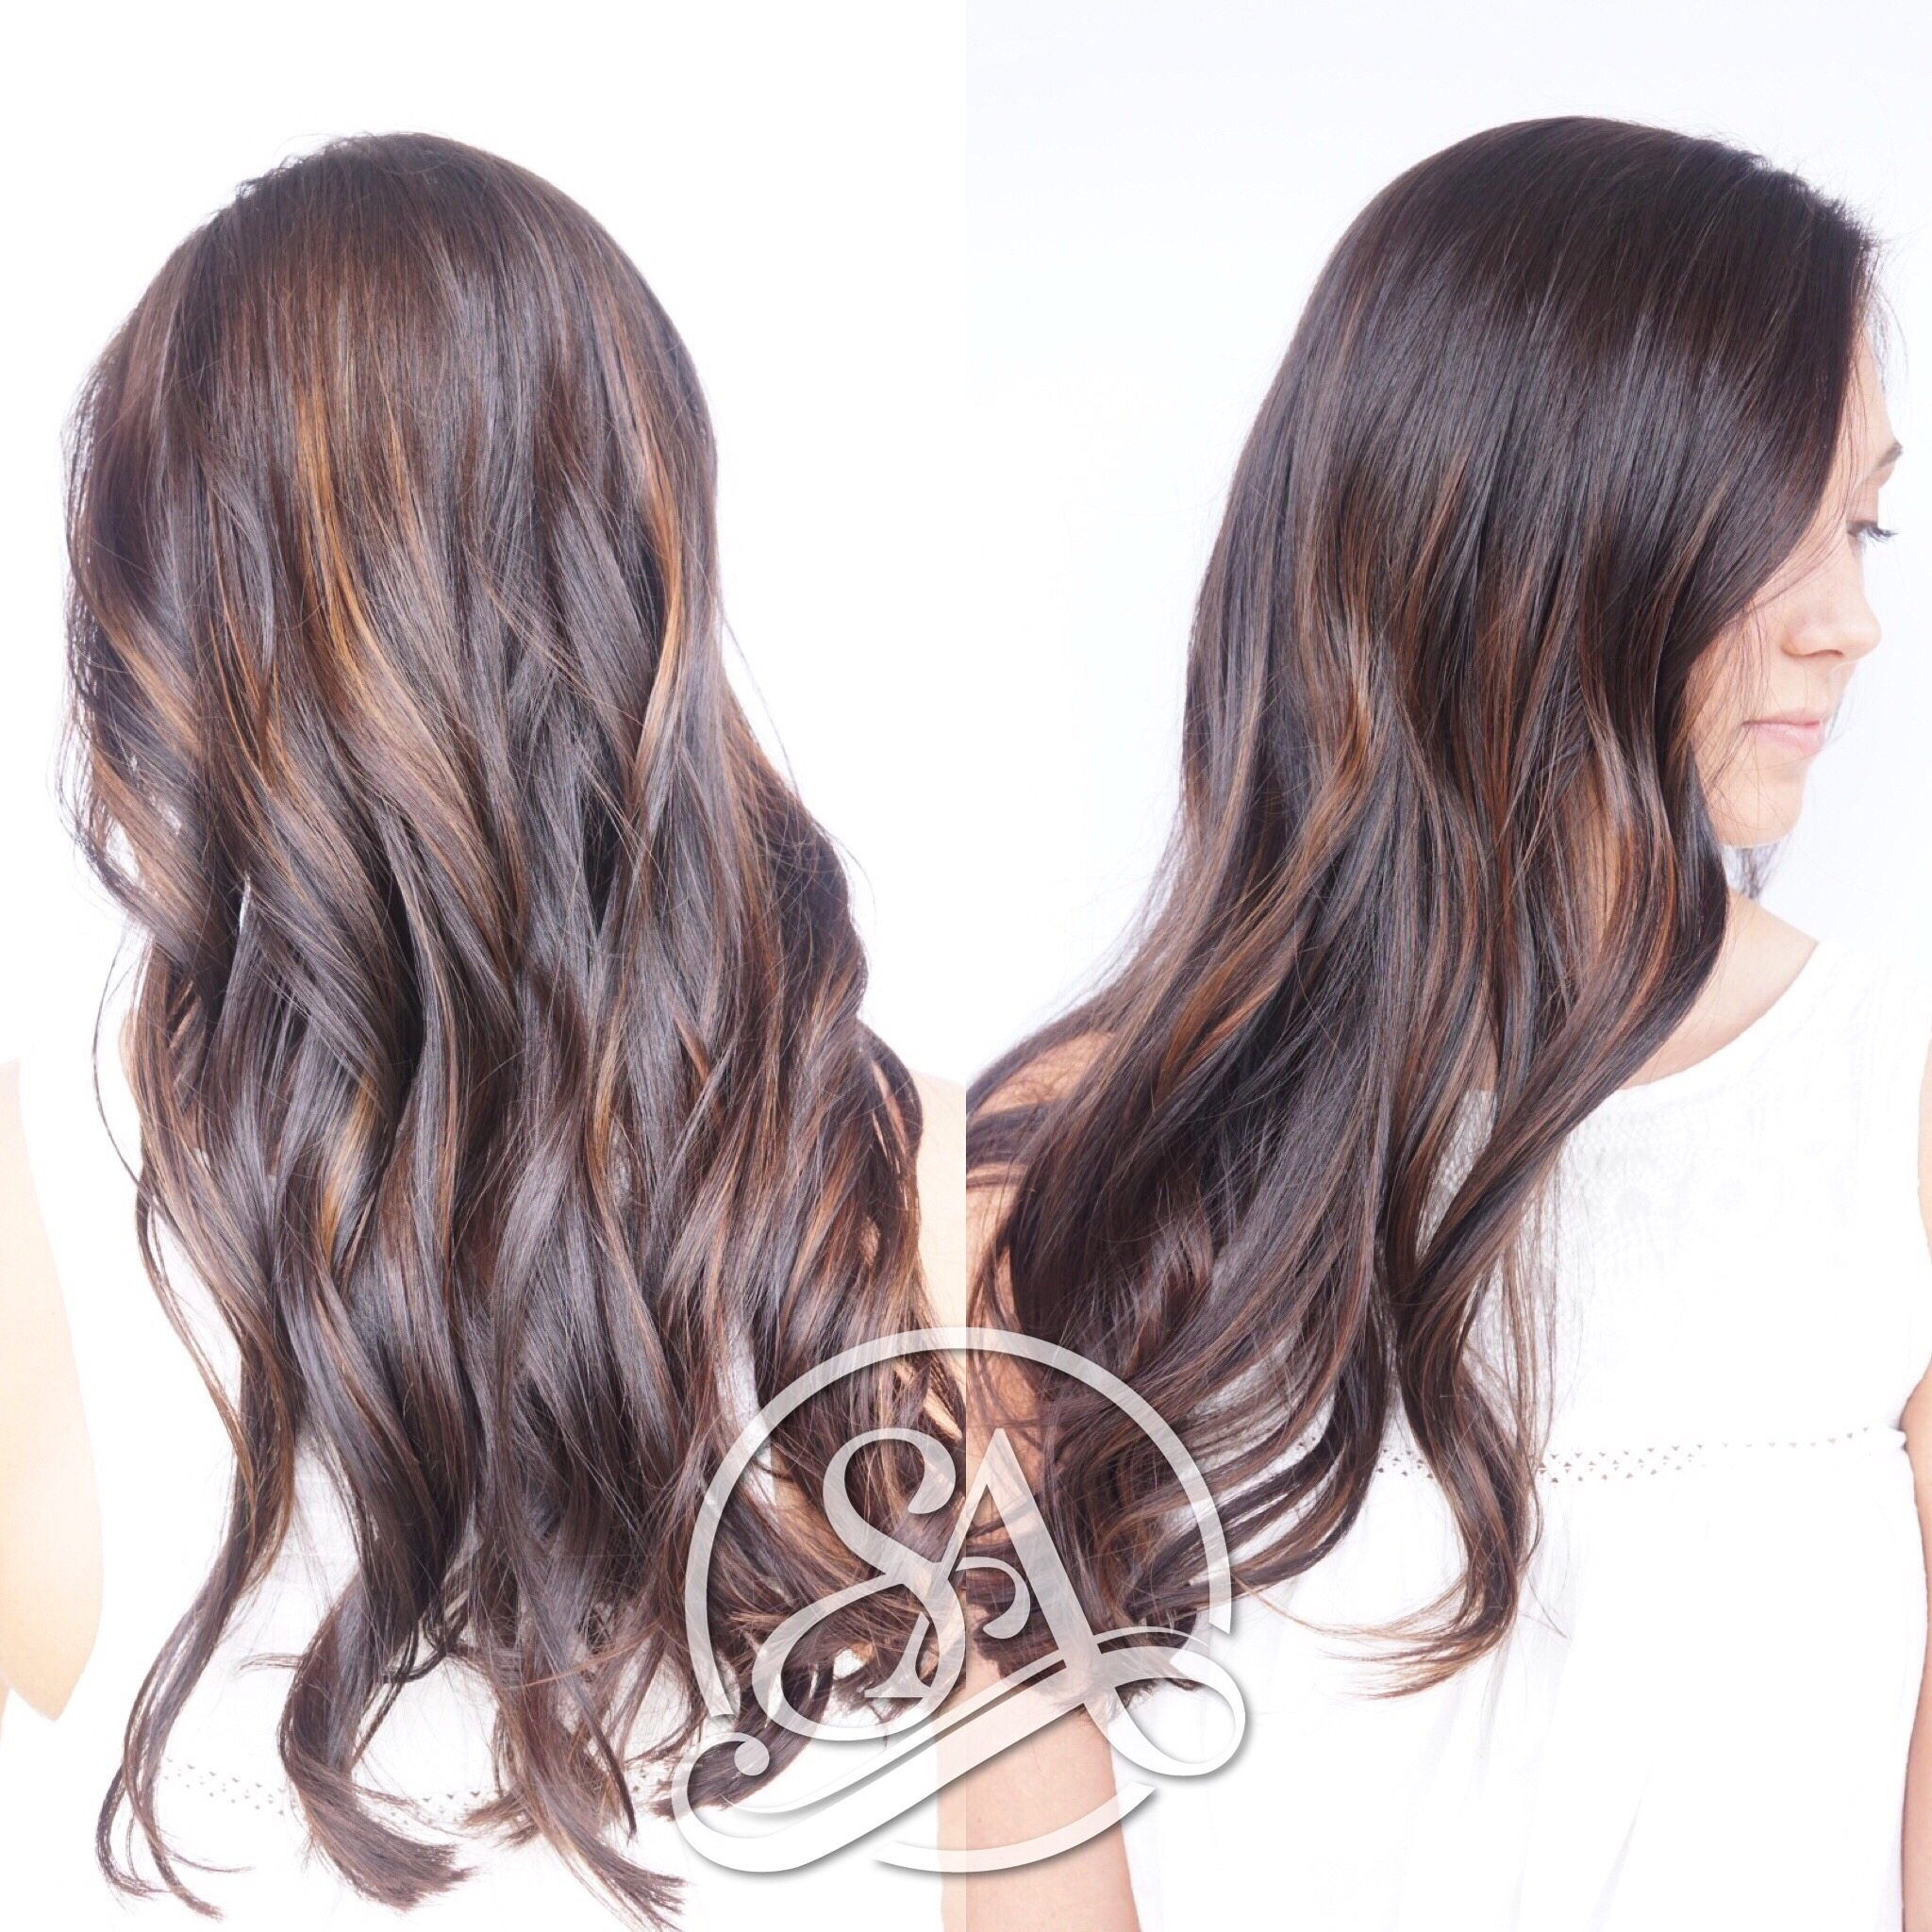 balayage hair salon